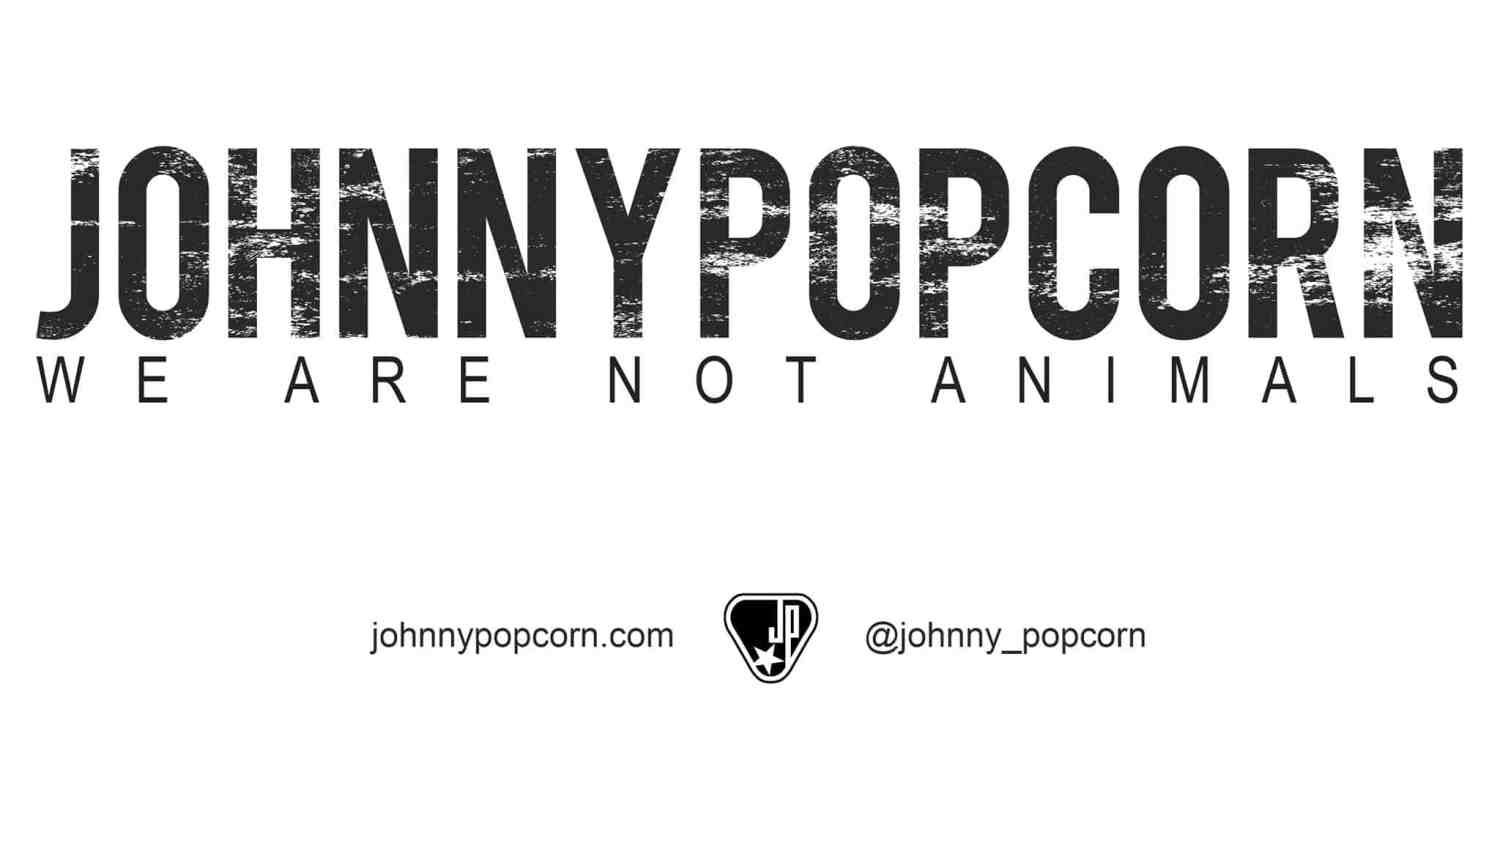 Johnny Popcorn - I own everthing (official Video)